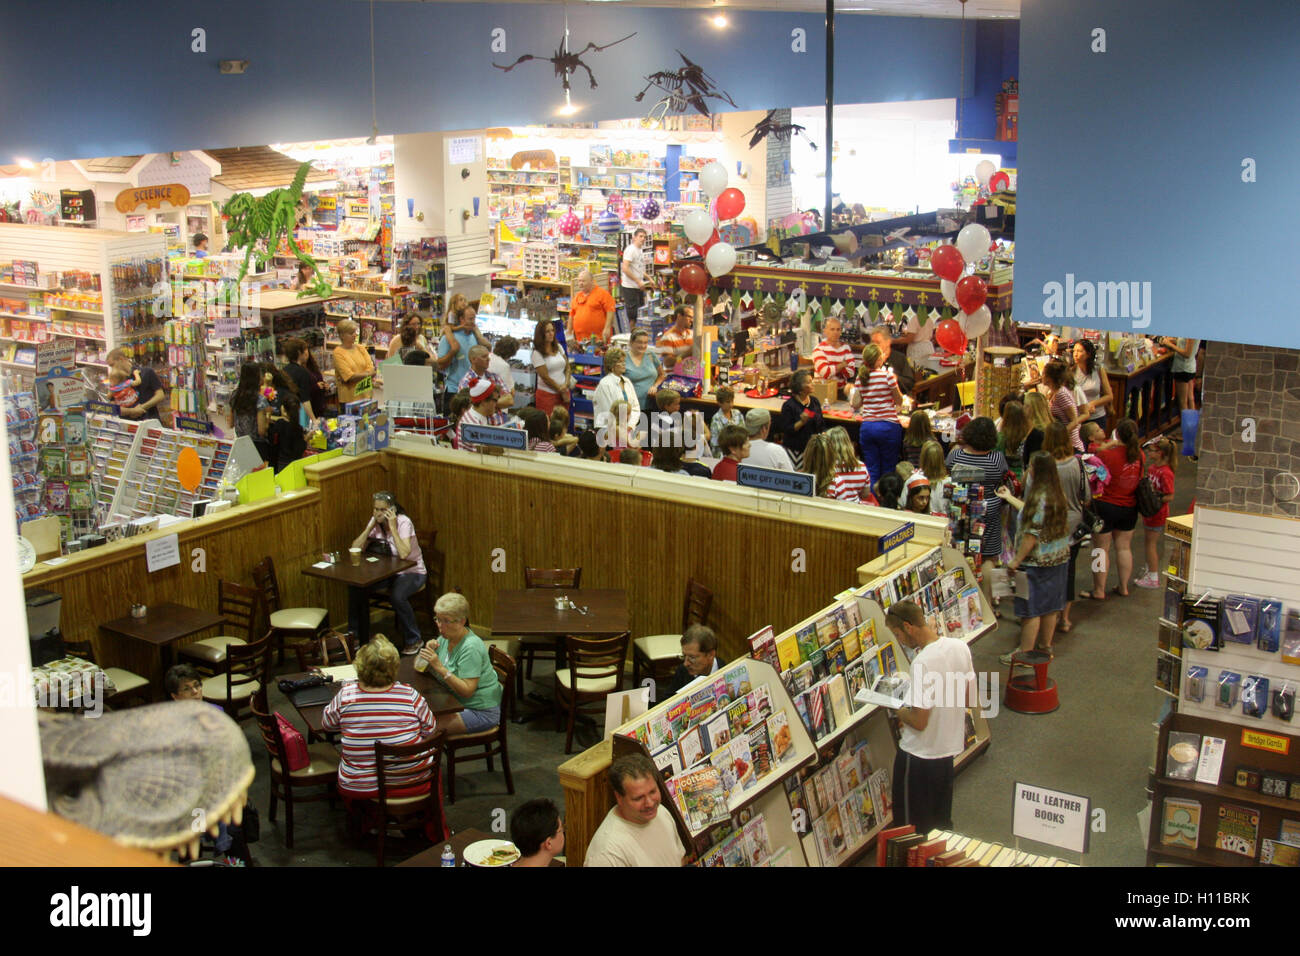 View of interior of Given Books- Little Dickens bookstore in Lynchburg, Virginia - Stock Image